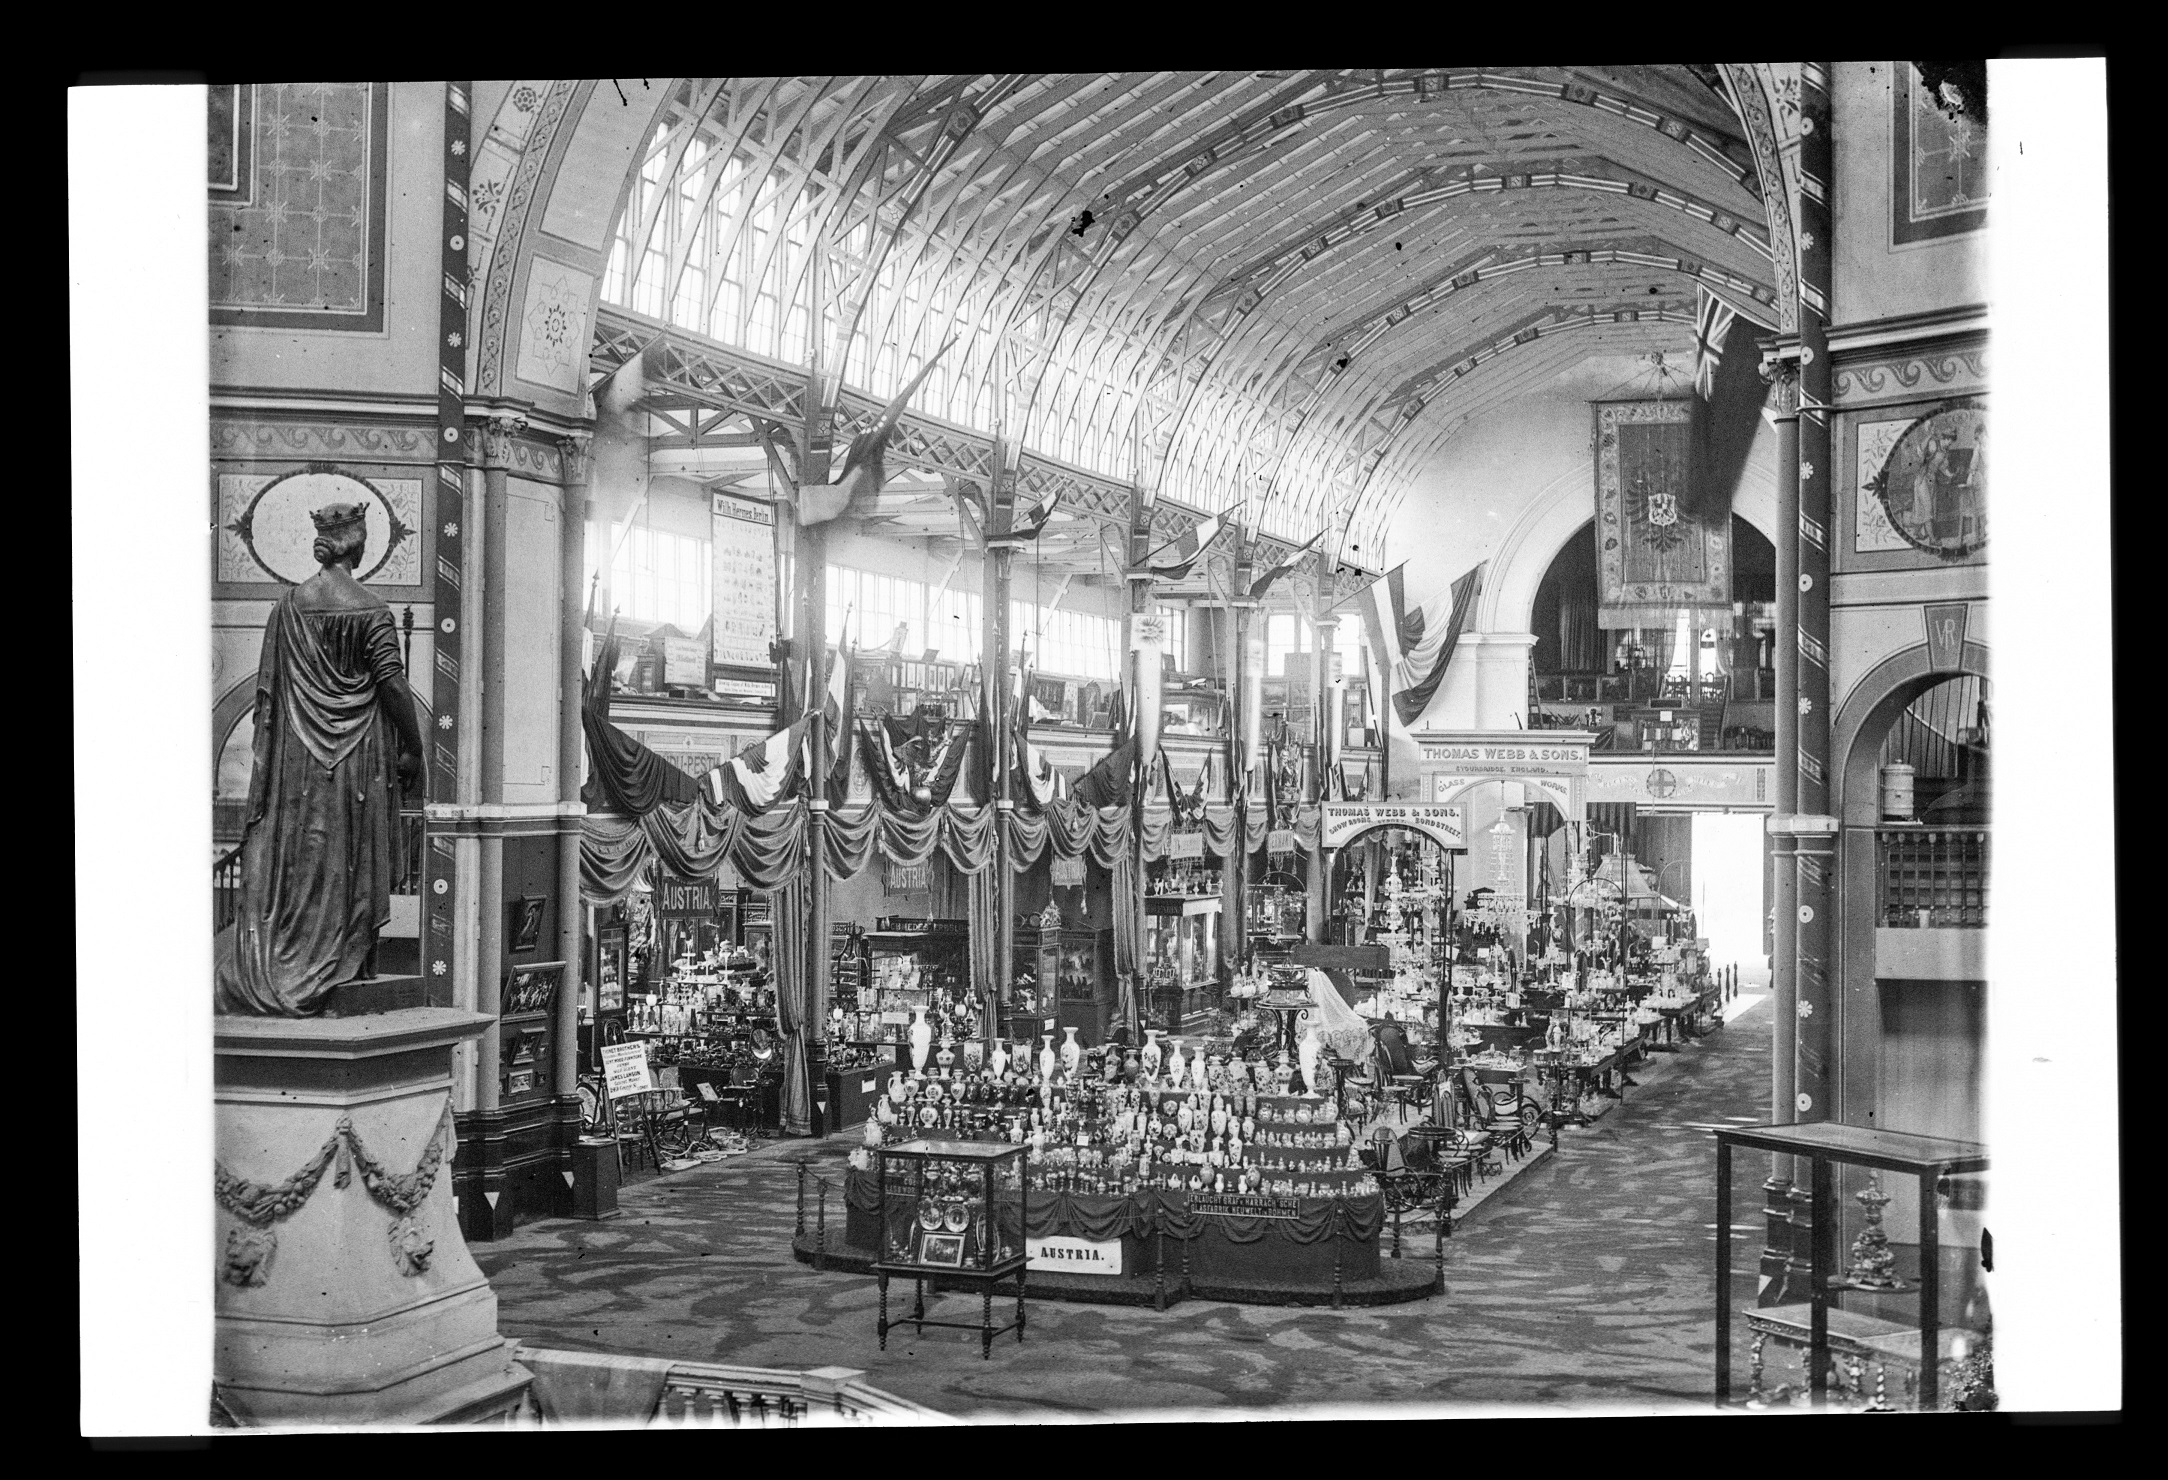 International Exhibition, Sydney, 1879-80: hall of exhibits